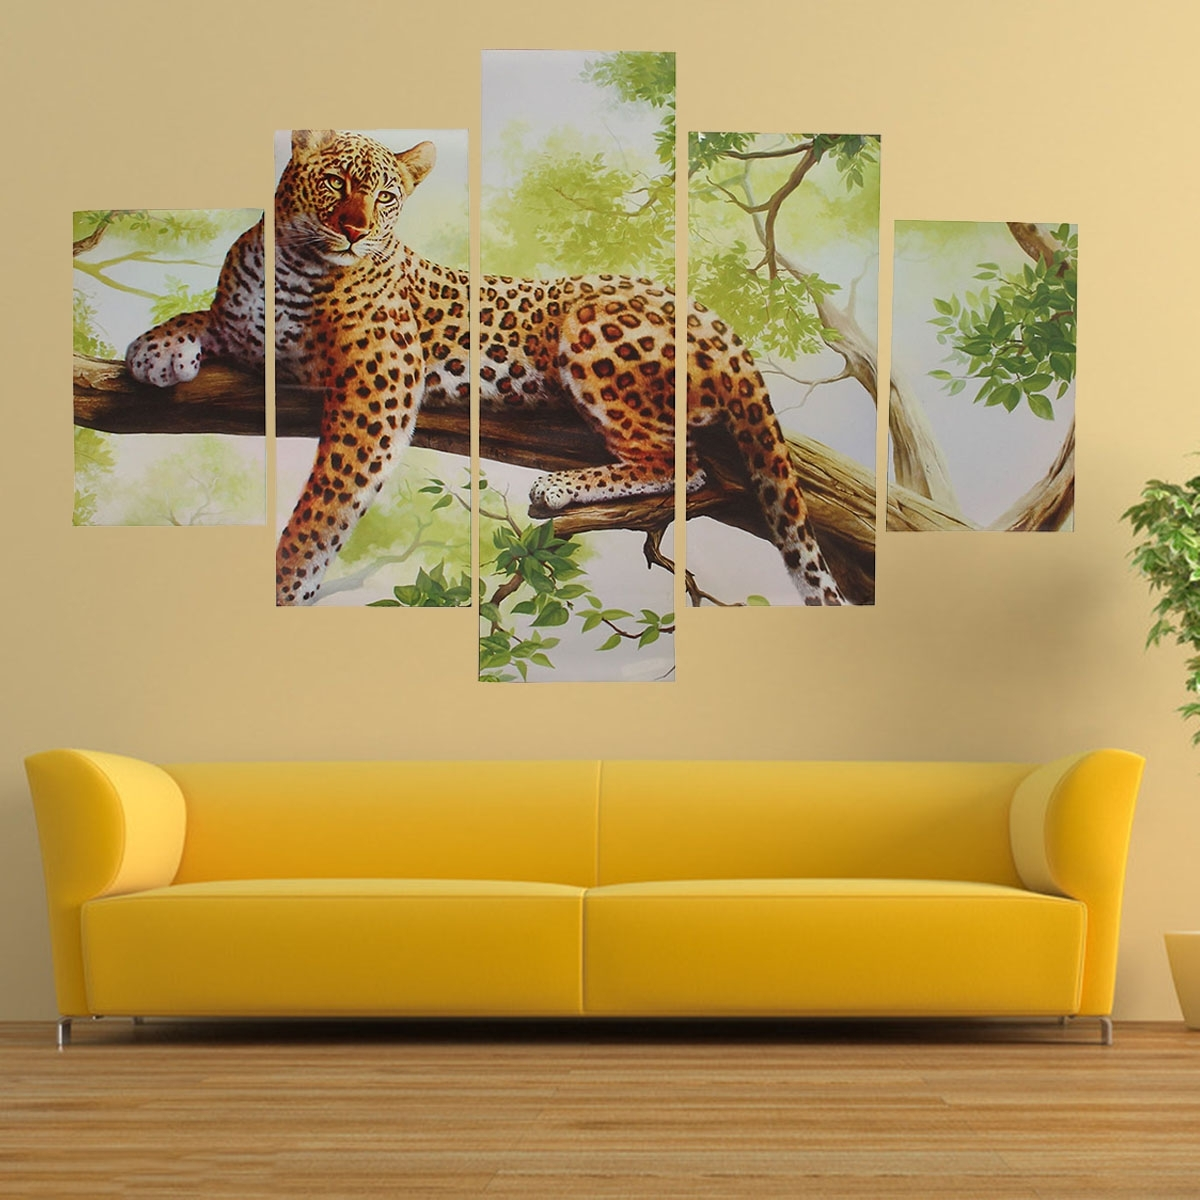 Showing Gallery of Leopard Print Wall Art (View 9 of 15 Photos)